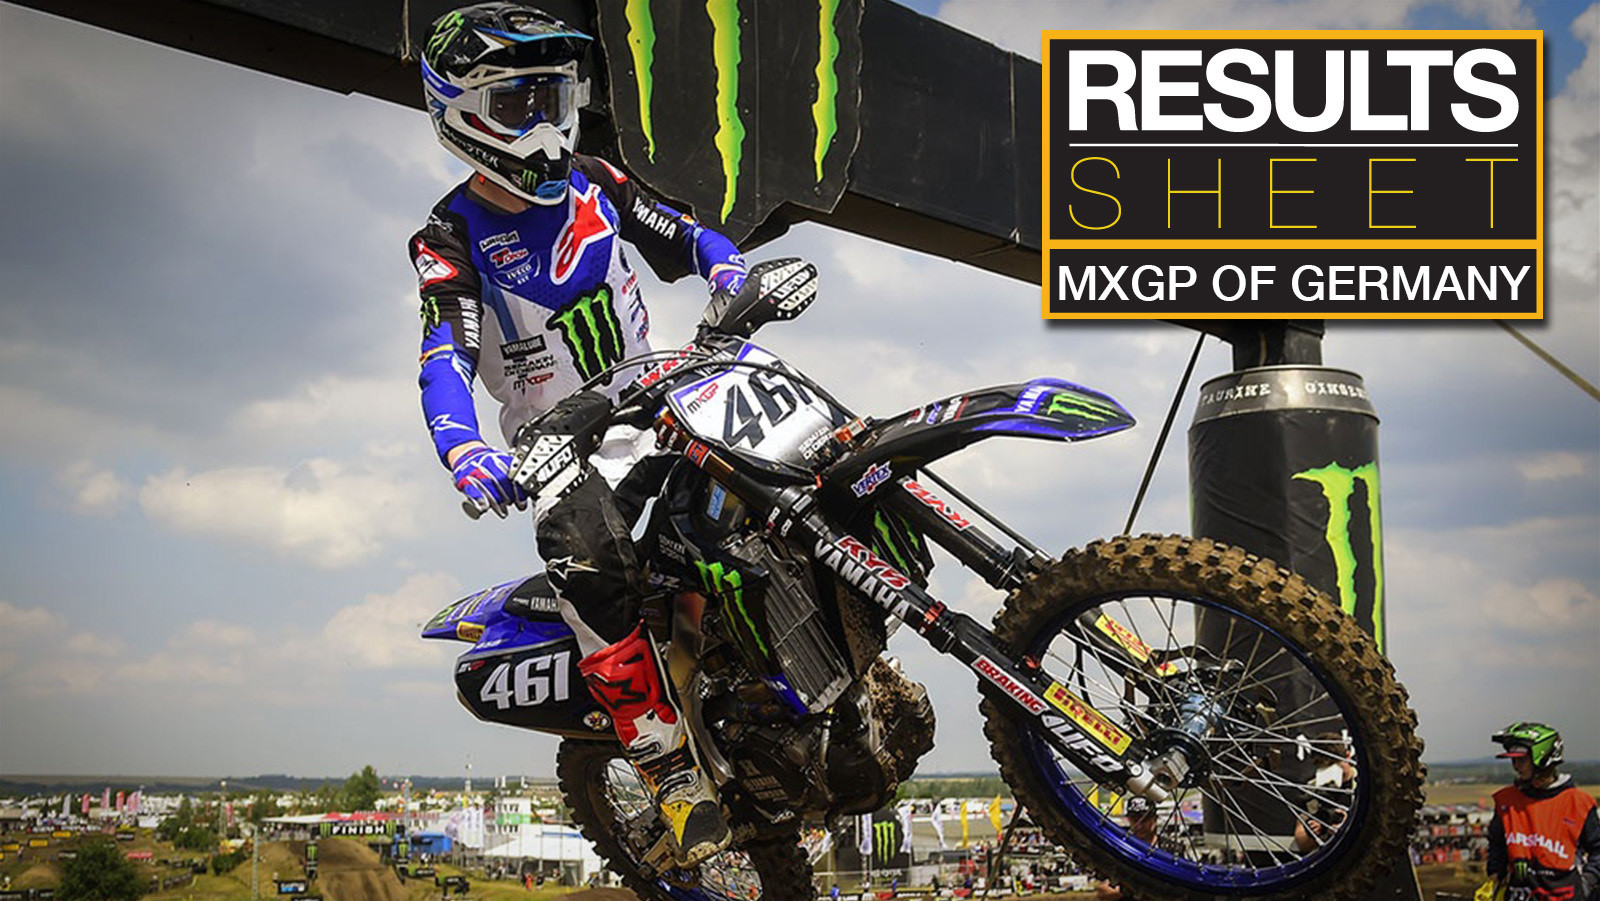 Results Sheet: 2019 MXGP of Germany